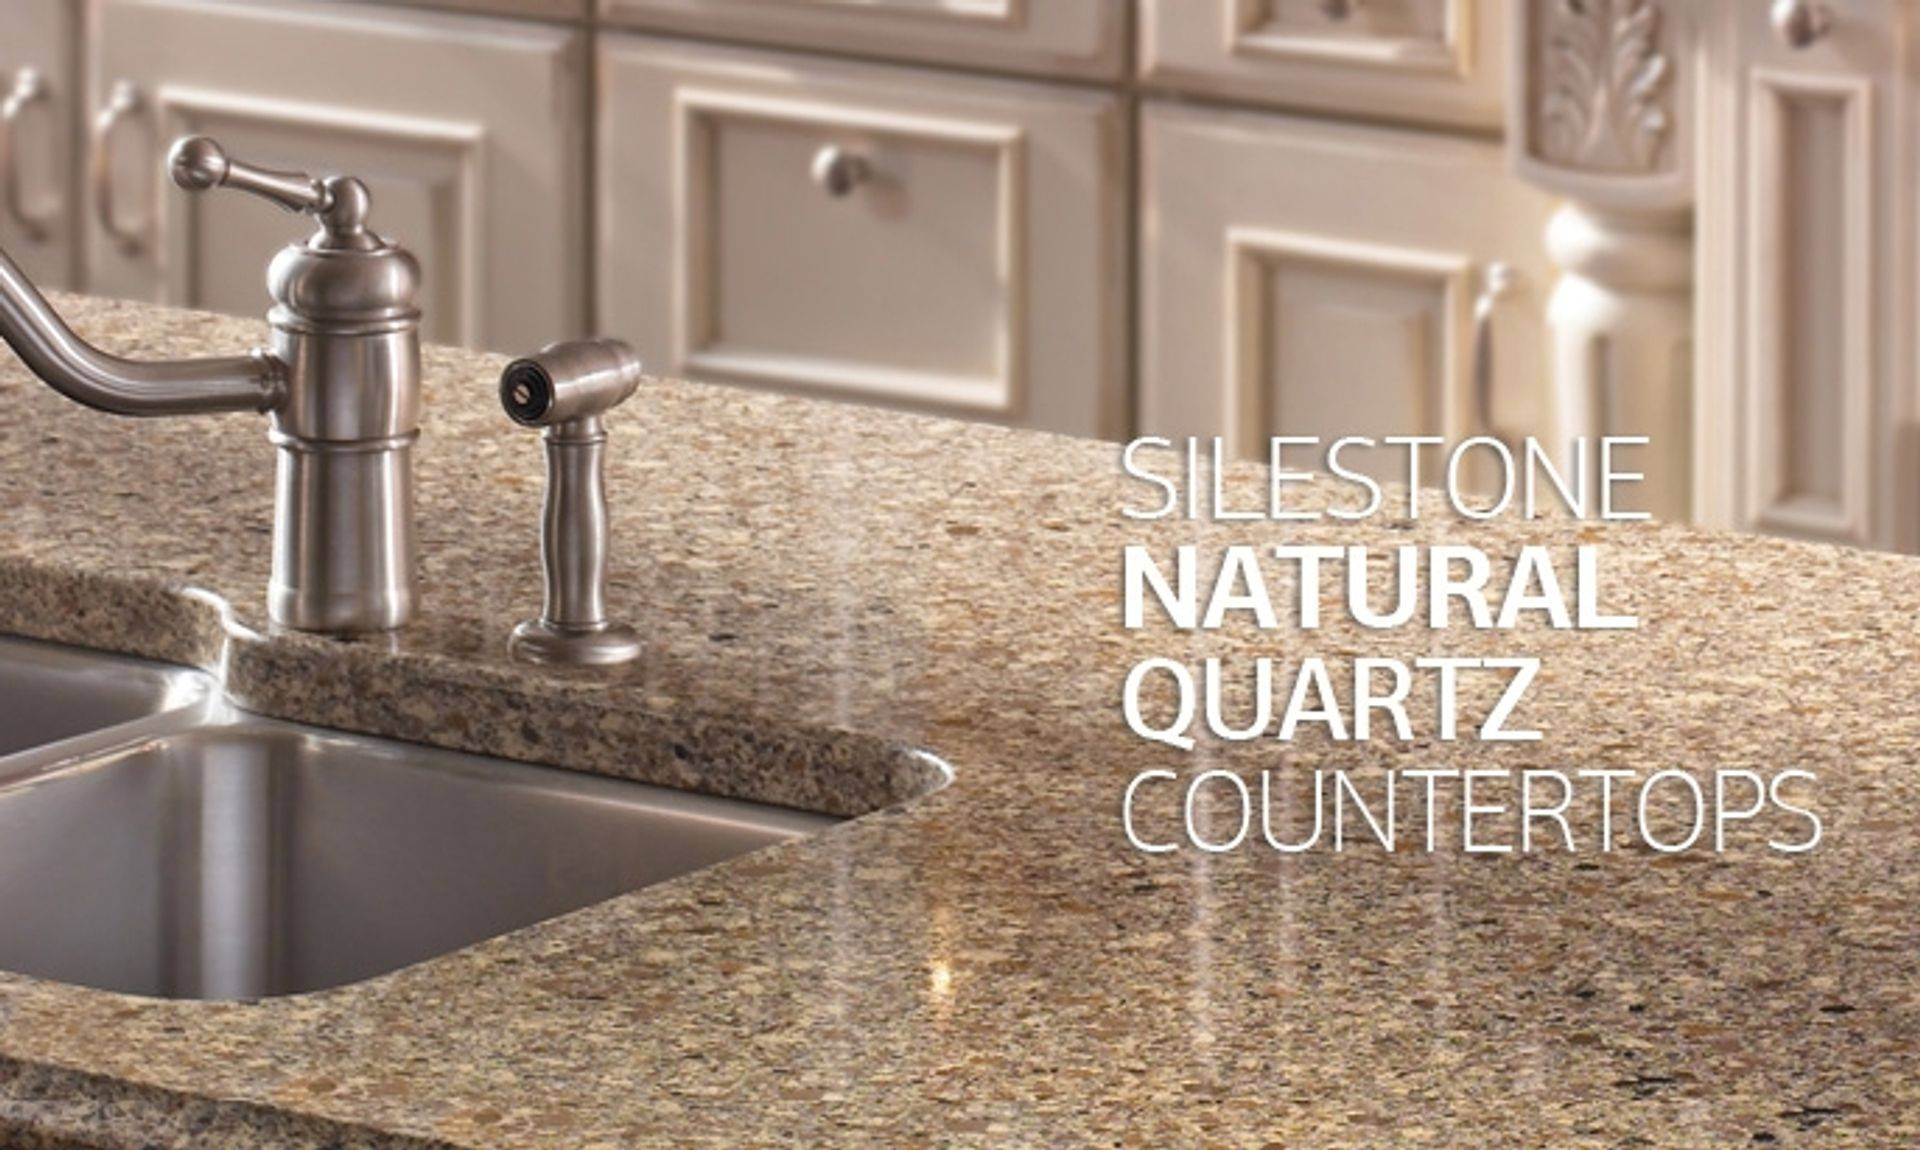 quartz countertops halifax,dartmouth